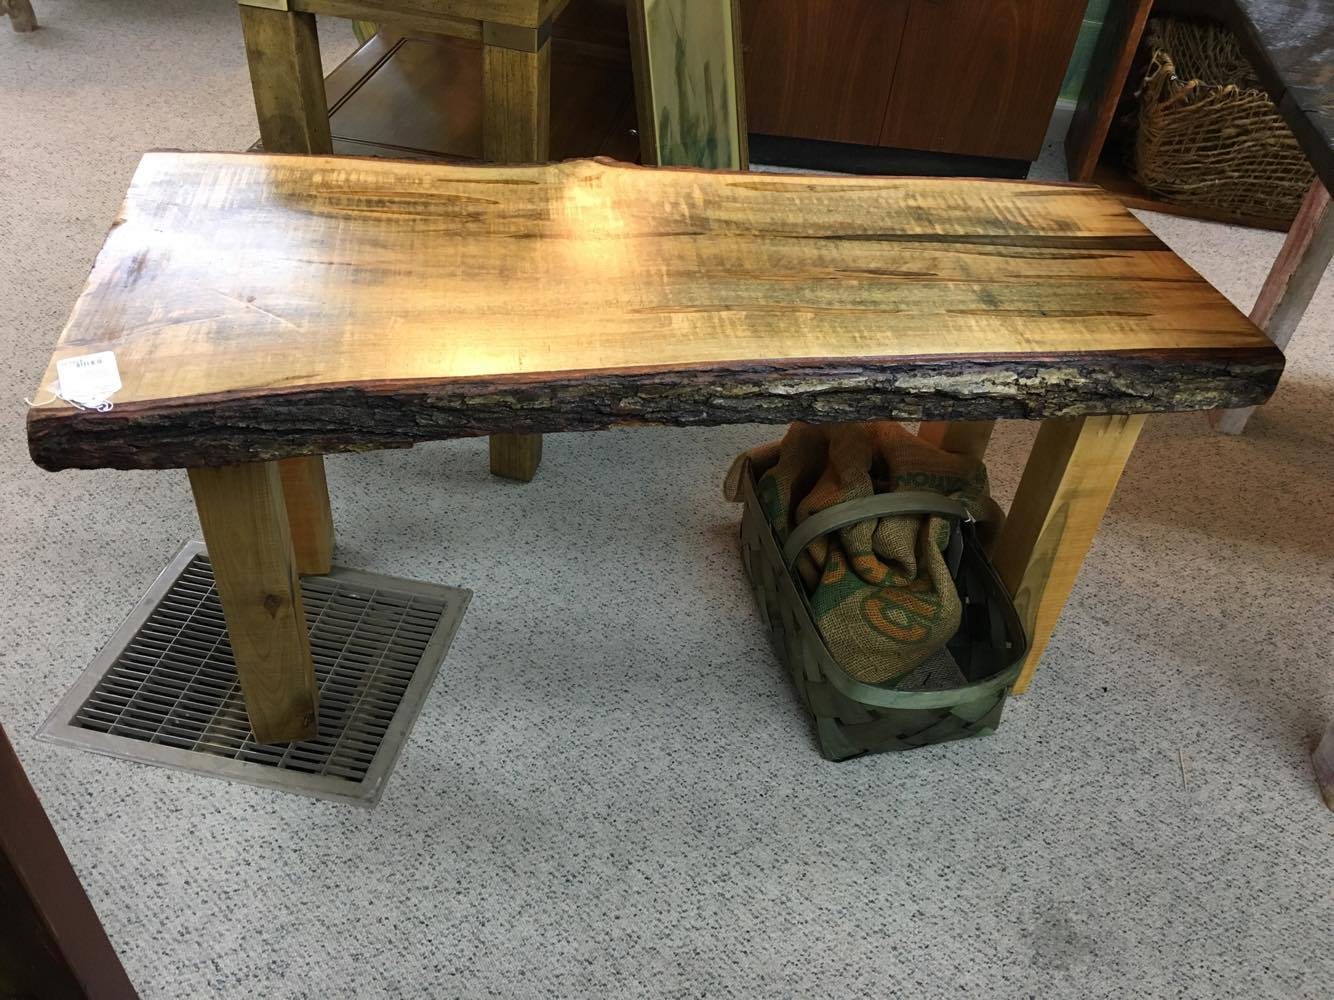 We Previously Had A Live Edge Walnut Pub Table, But On Our Floor Now Is  Antique Rough Sawn Heart Pine Farm Tables With 2 Benches, And An Ambrosia  Maple Farm ...